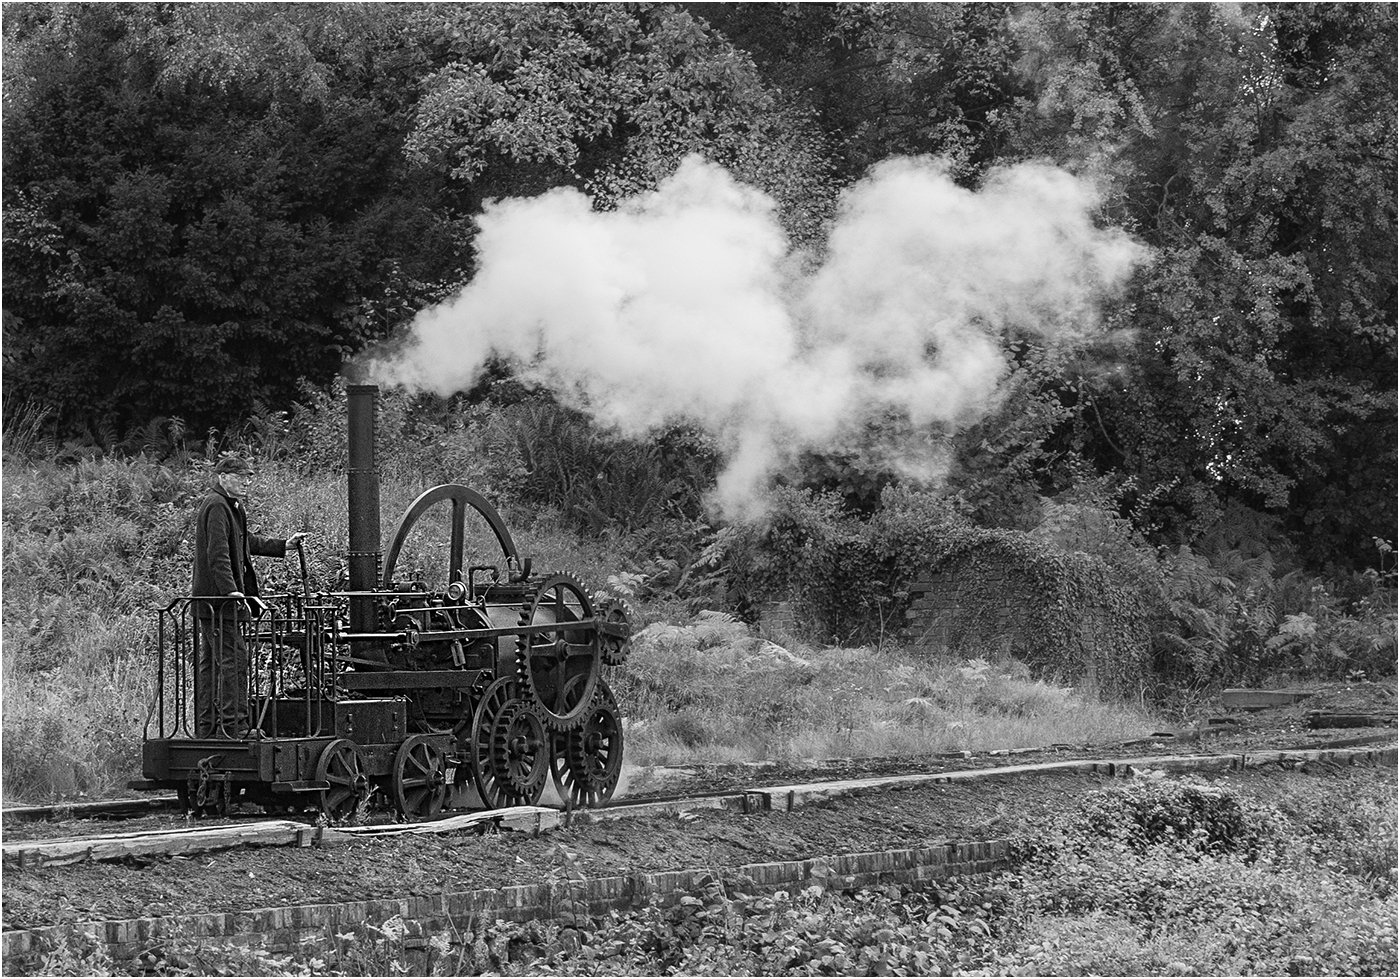 Commended: Trevithick Steam Loco 1802 (Bryan Organ)